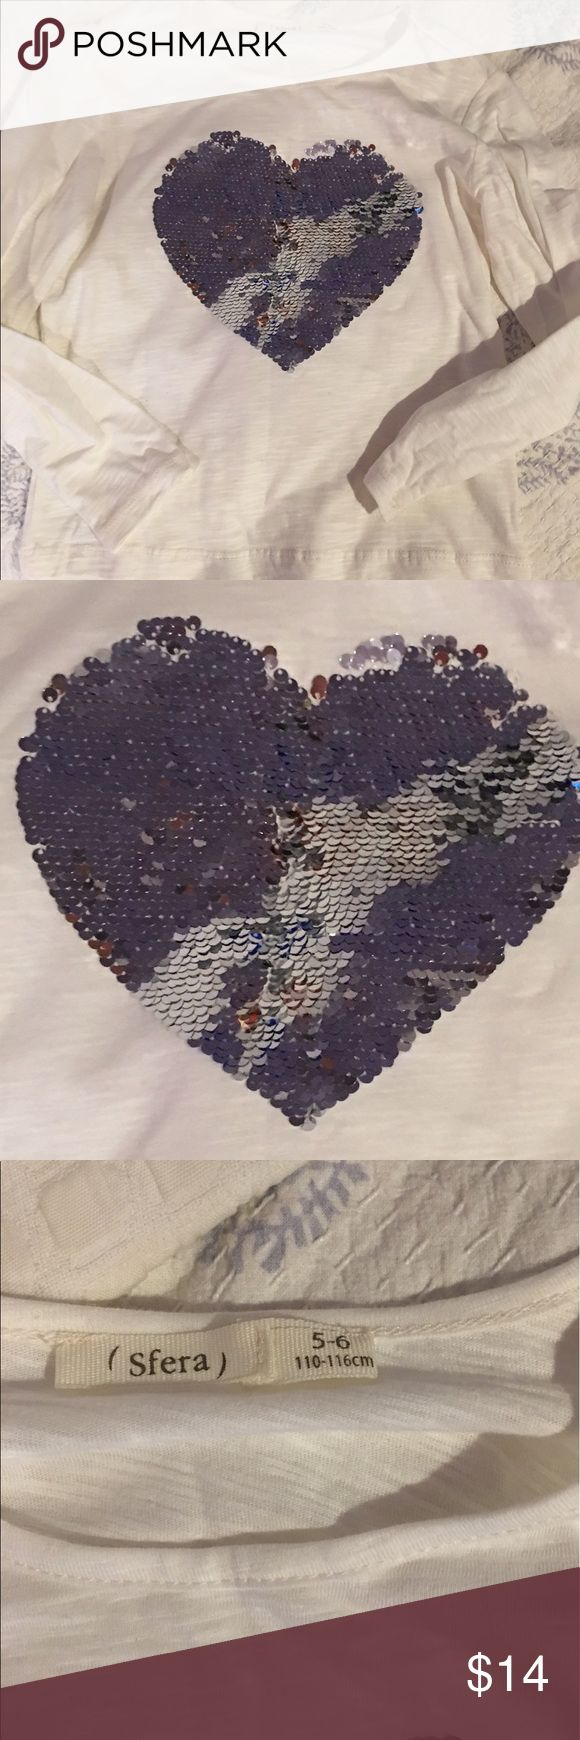 NWOT LS sequin heart Tank From Spain. The sequins flip up and down. Never worn Sfera Shirts & Tops Tees - Long Sleeve